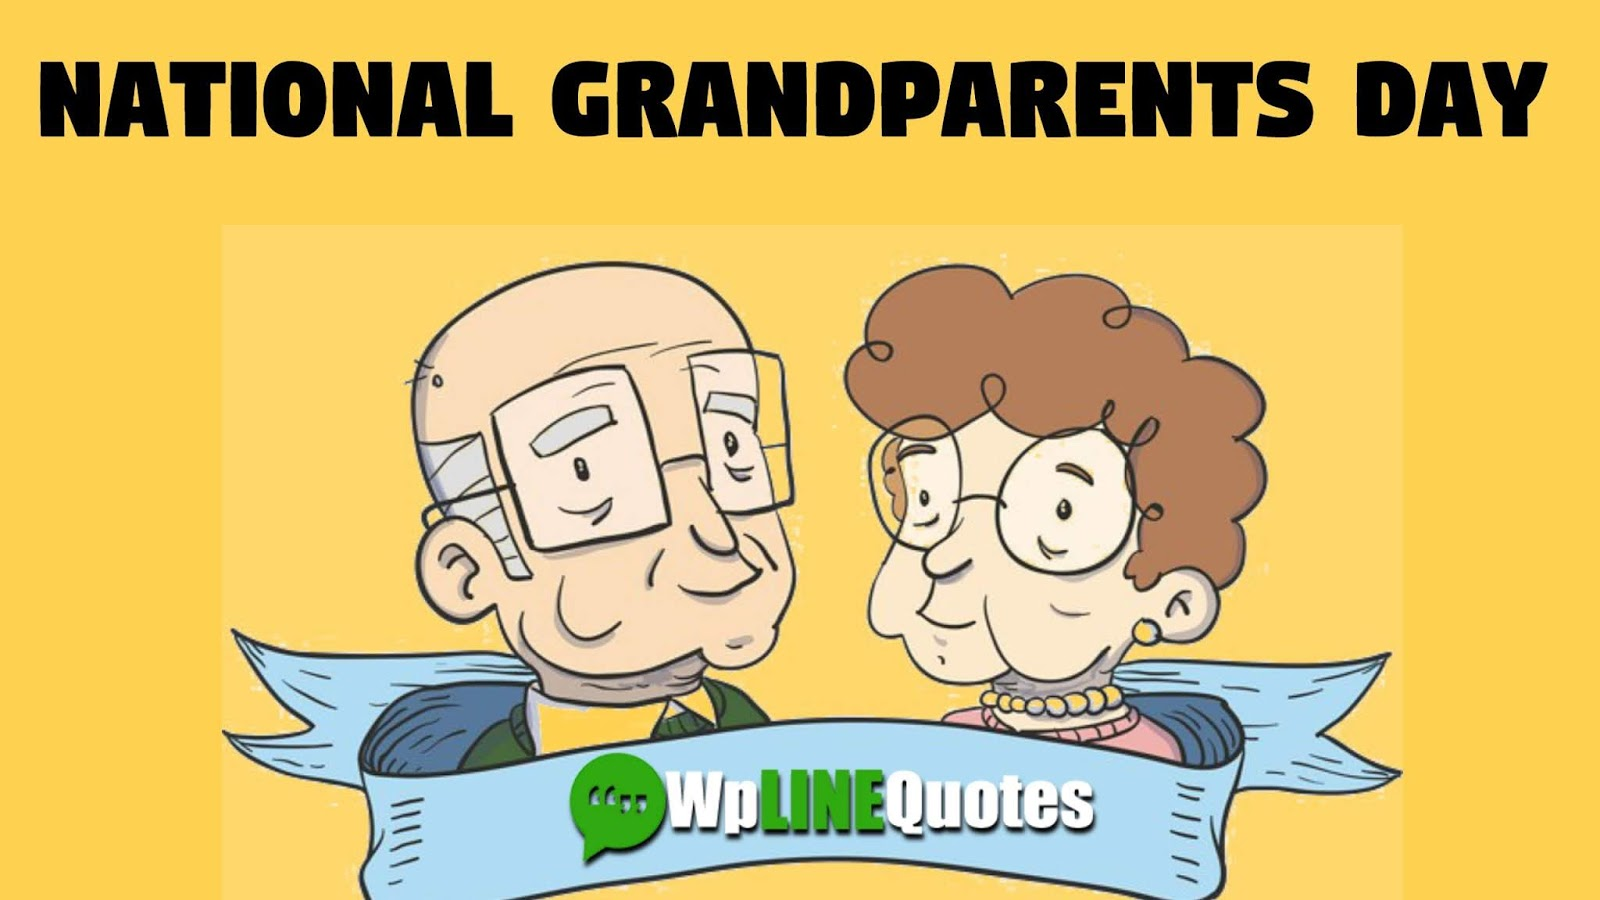 Best 50+ Happy National Grandparents Day 2019 Quotes, Wishes, Images and Messages